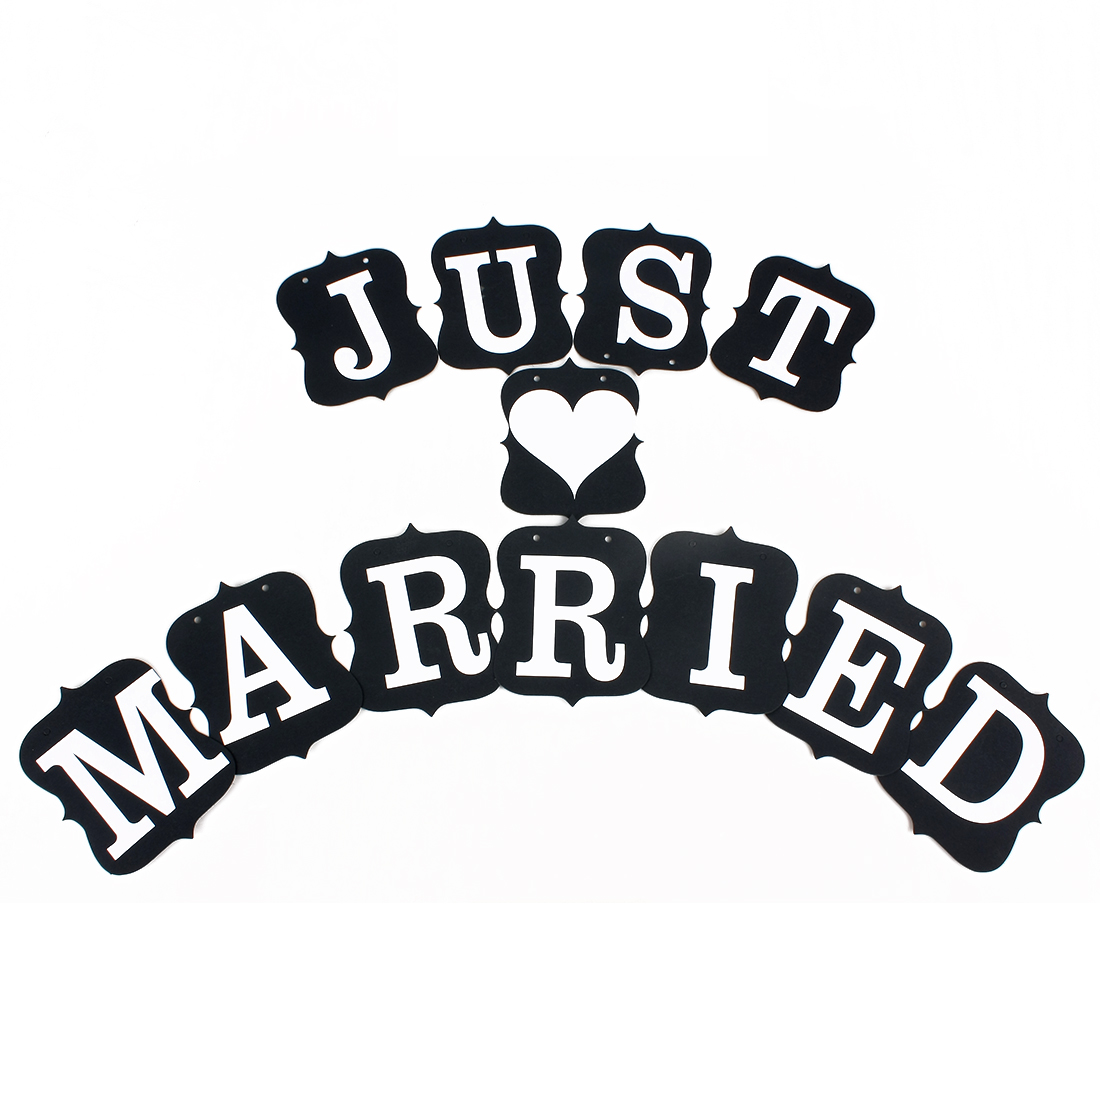 JUST MARRIED Letter Wedding Card Bunting Engagement Banner Venue Decor Photo Prop